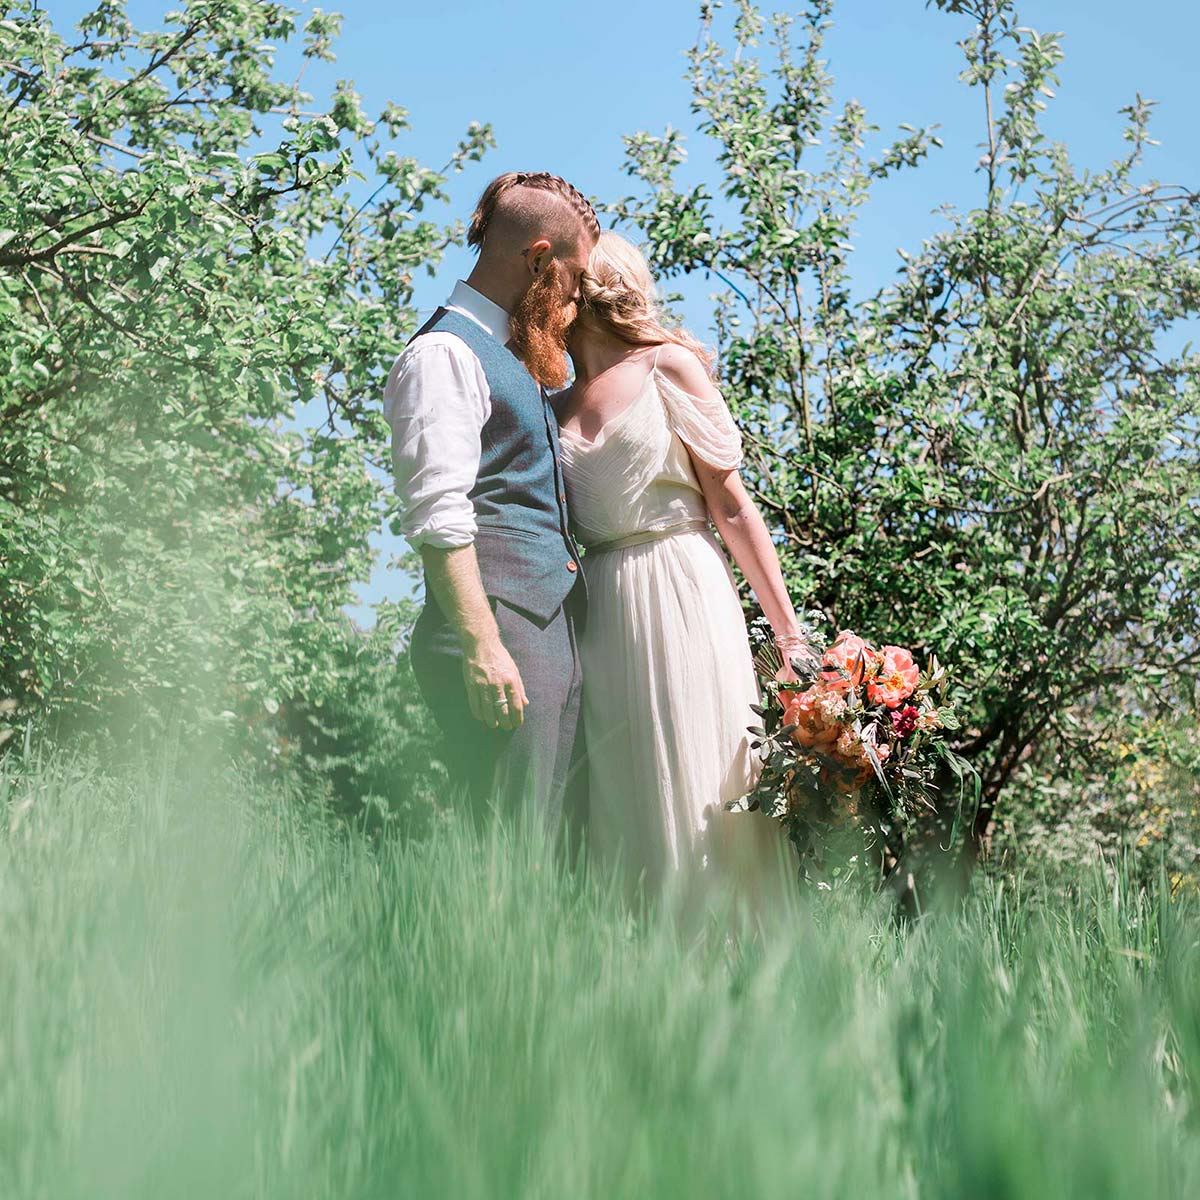 Bride and groom embraced in wildflower meadow after their elopement wedding